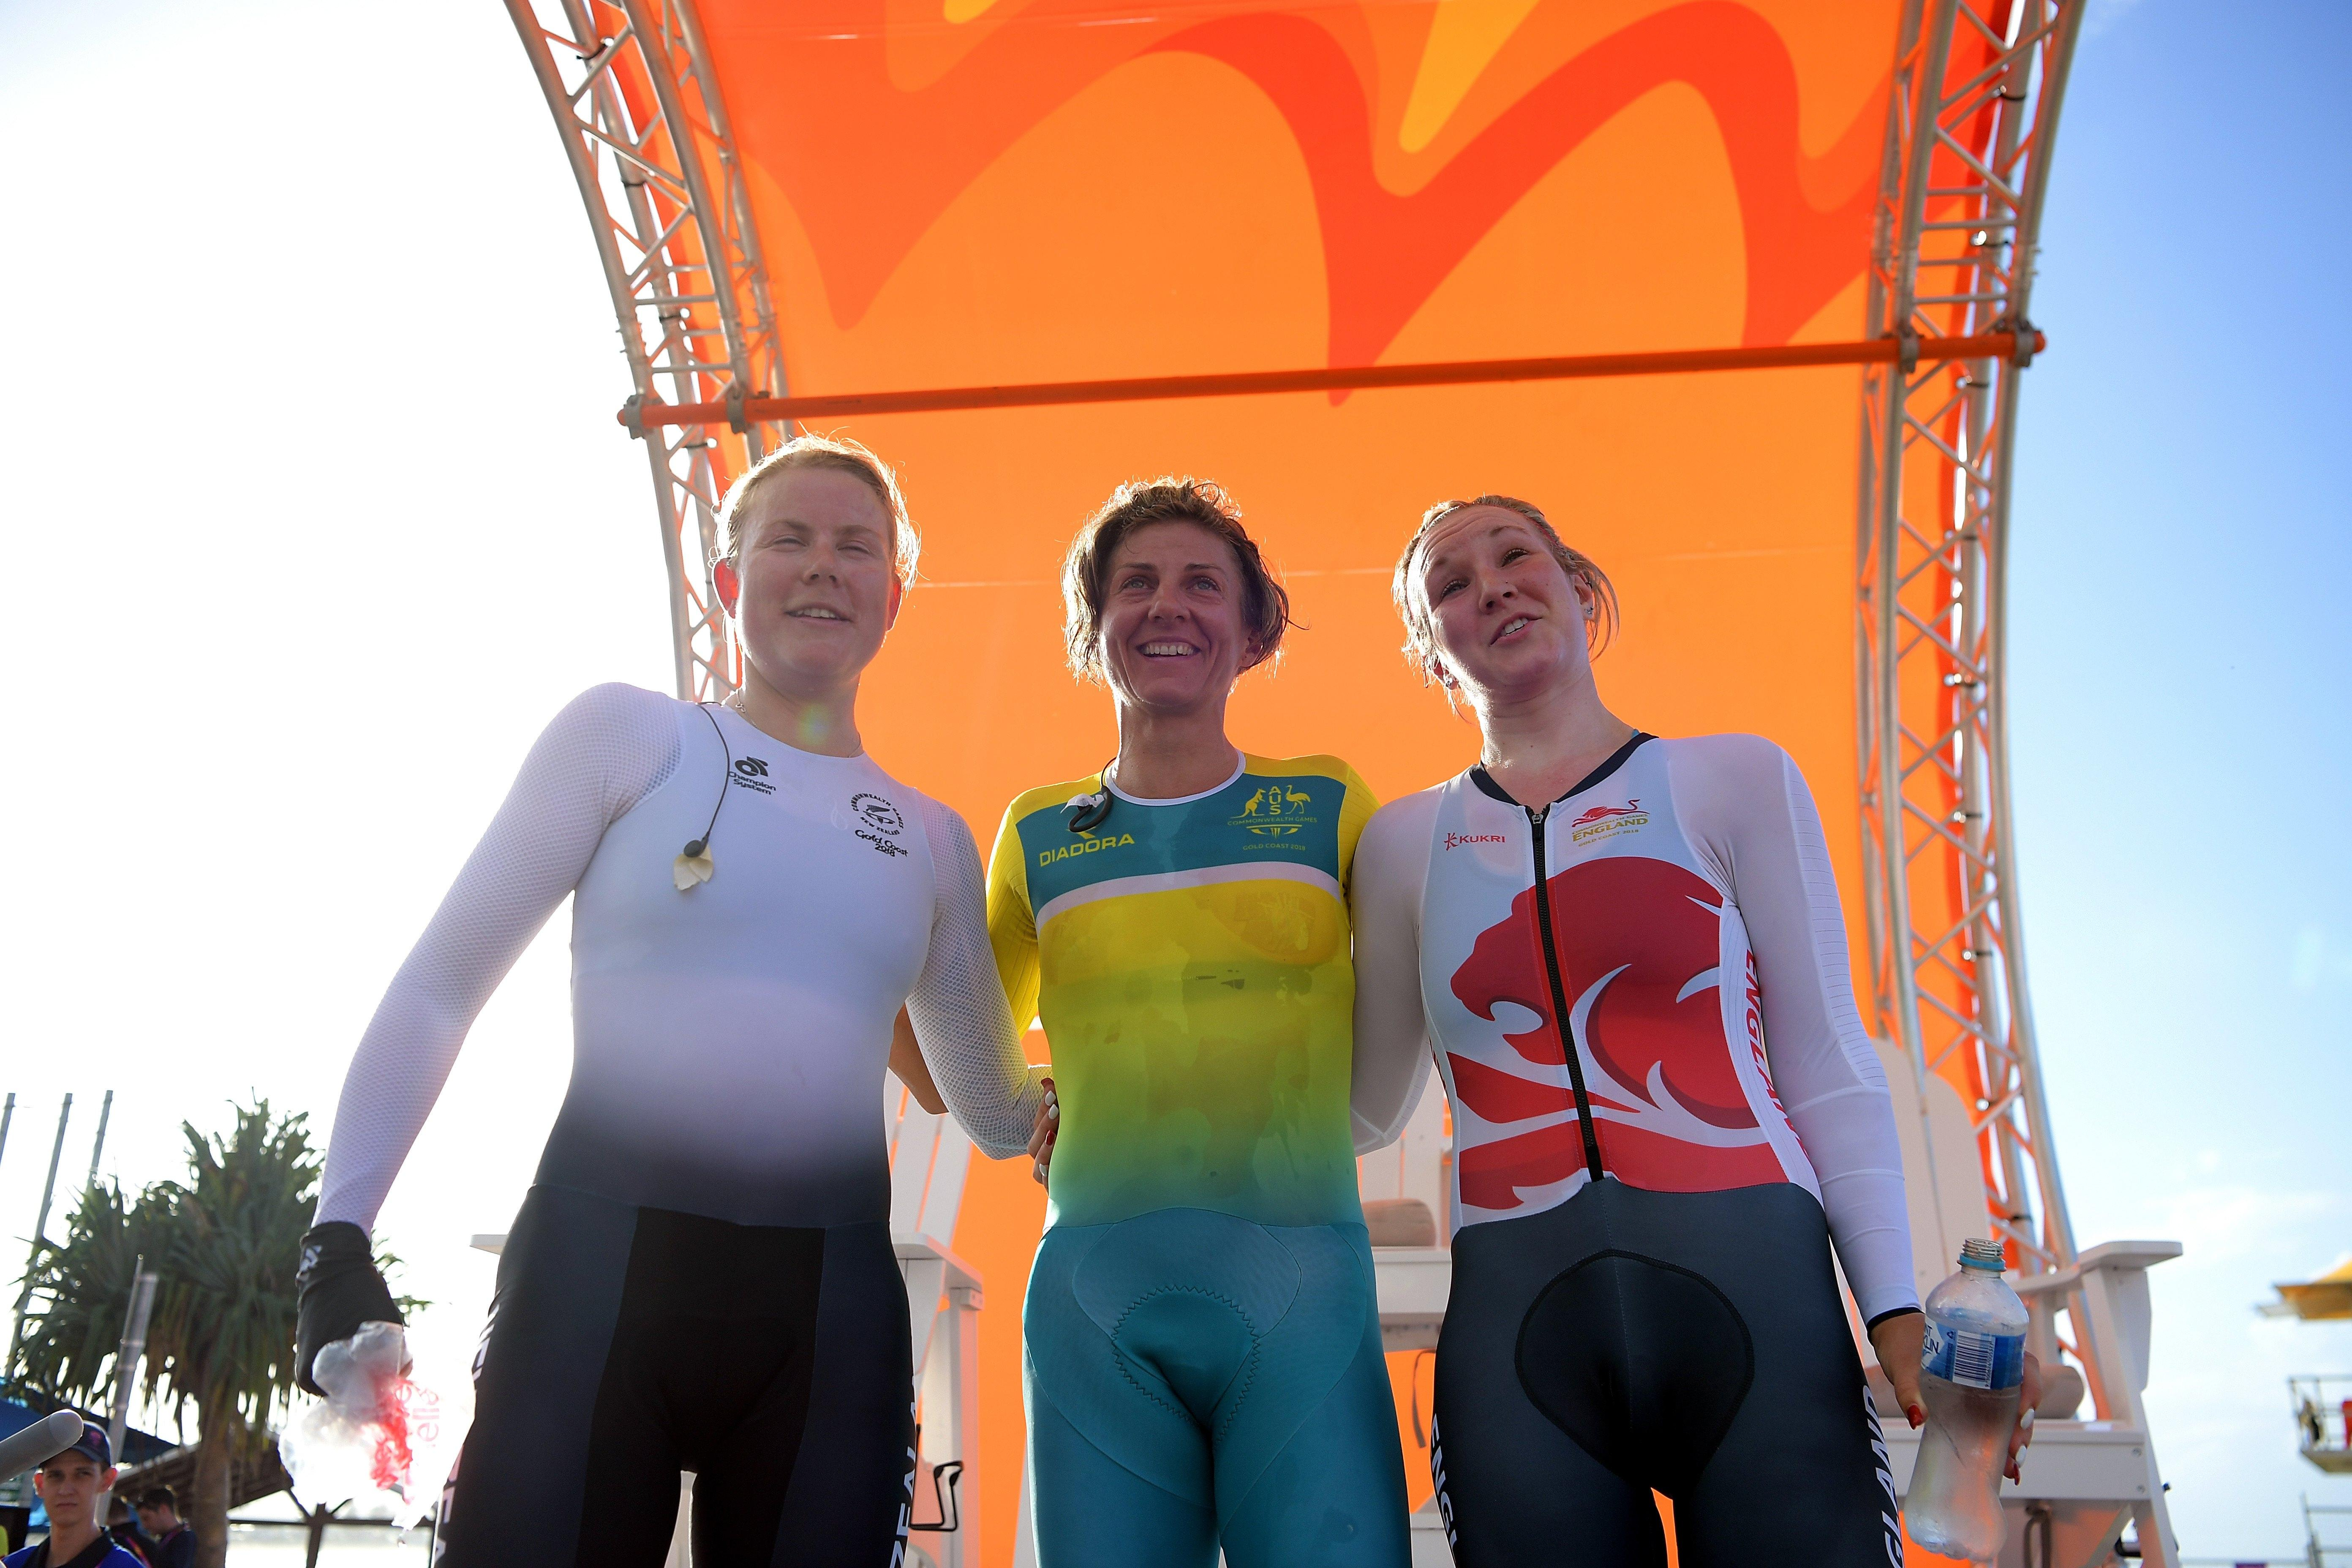 Australia, New Zealand and England made it a 1-2-3 on the podium on the Gold Coast